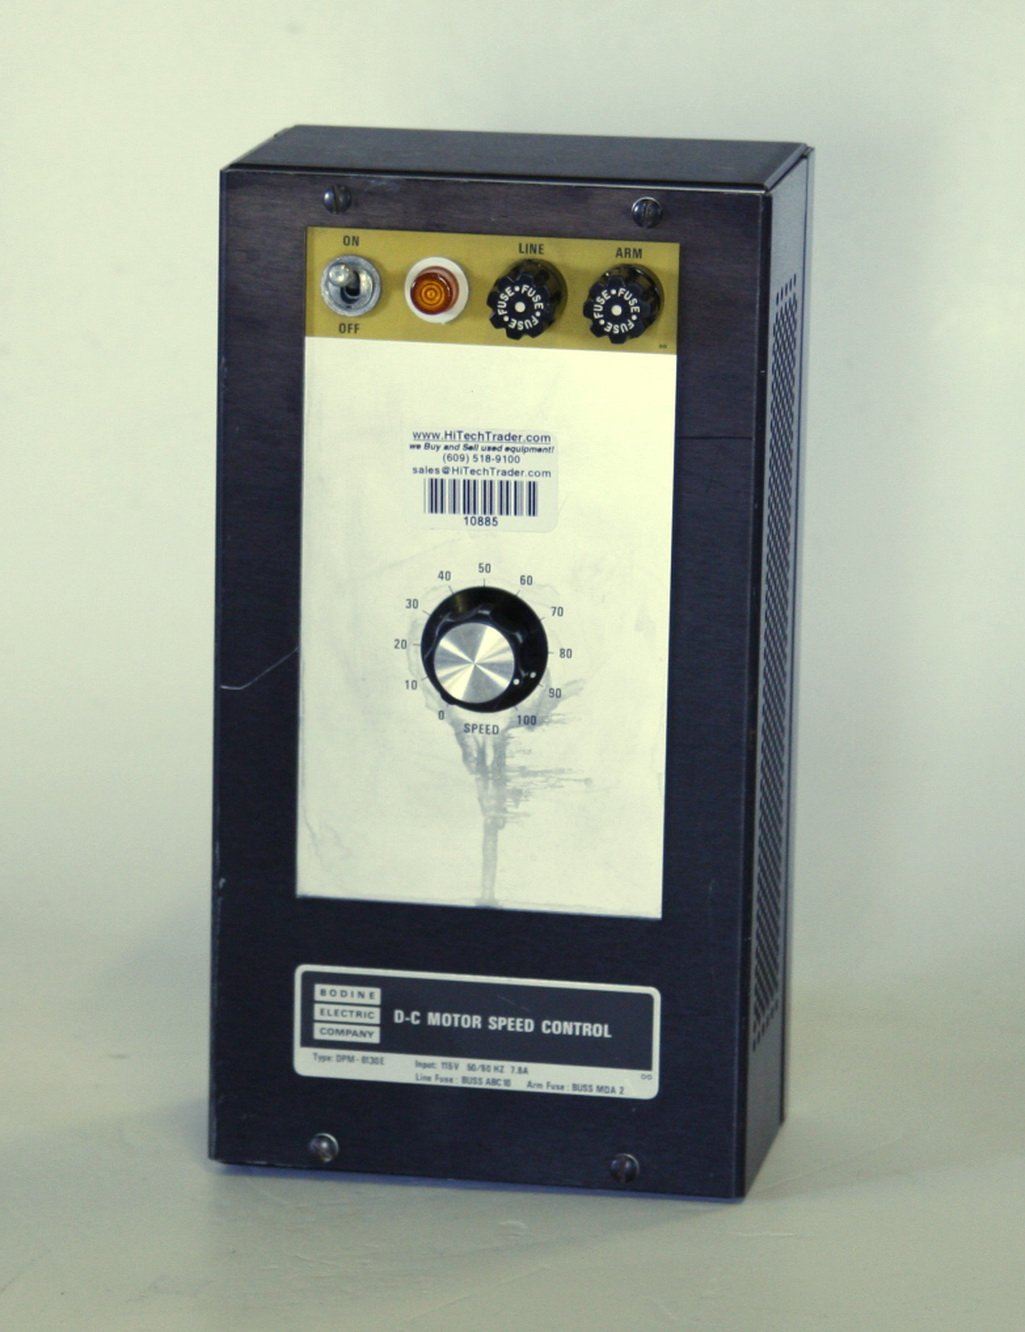 Bodine Electric Company DC Motor Speed Control